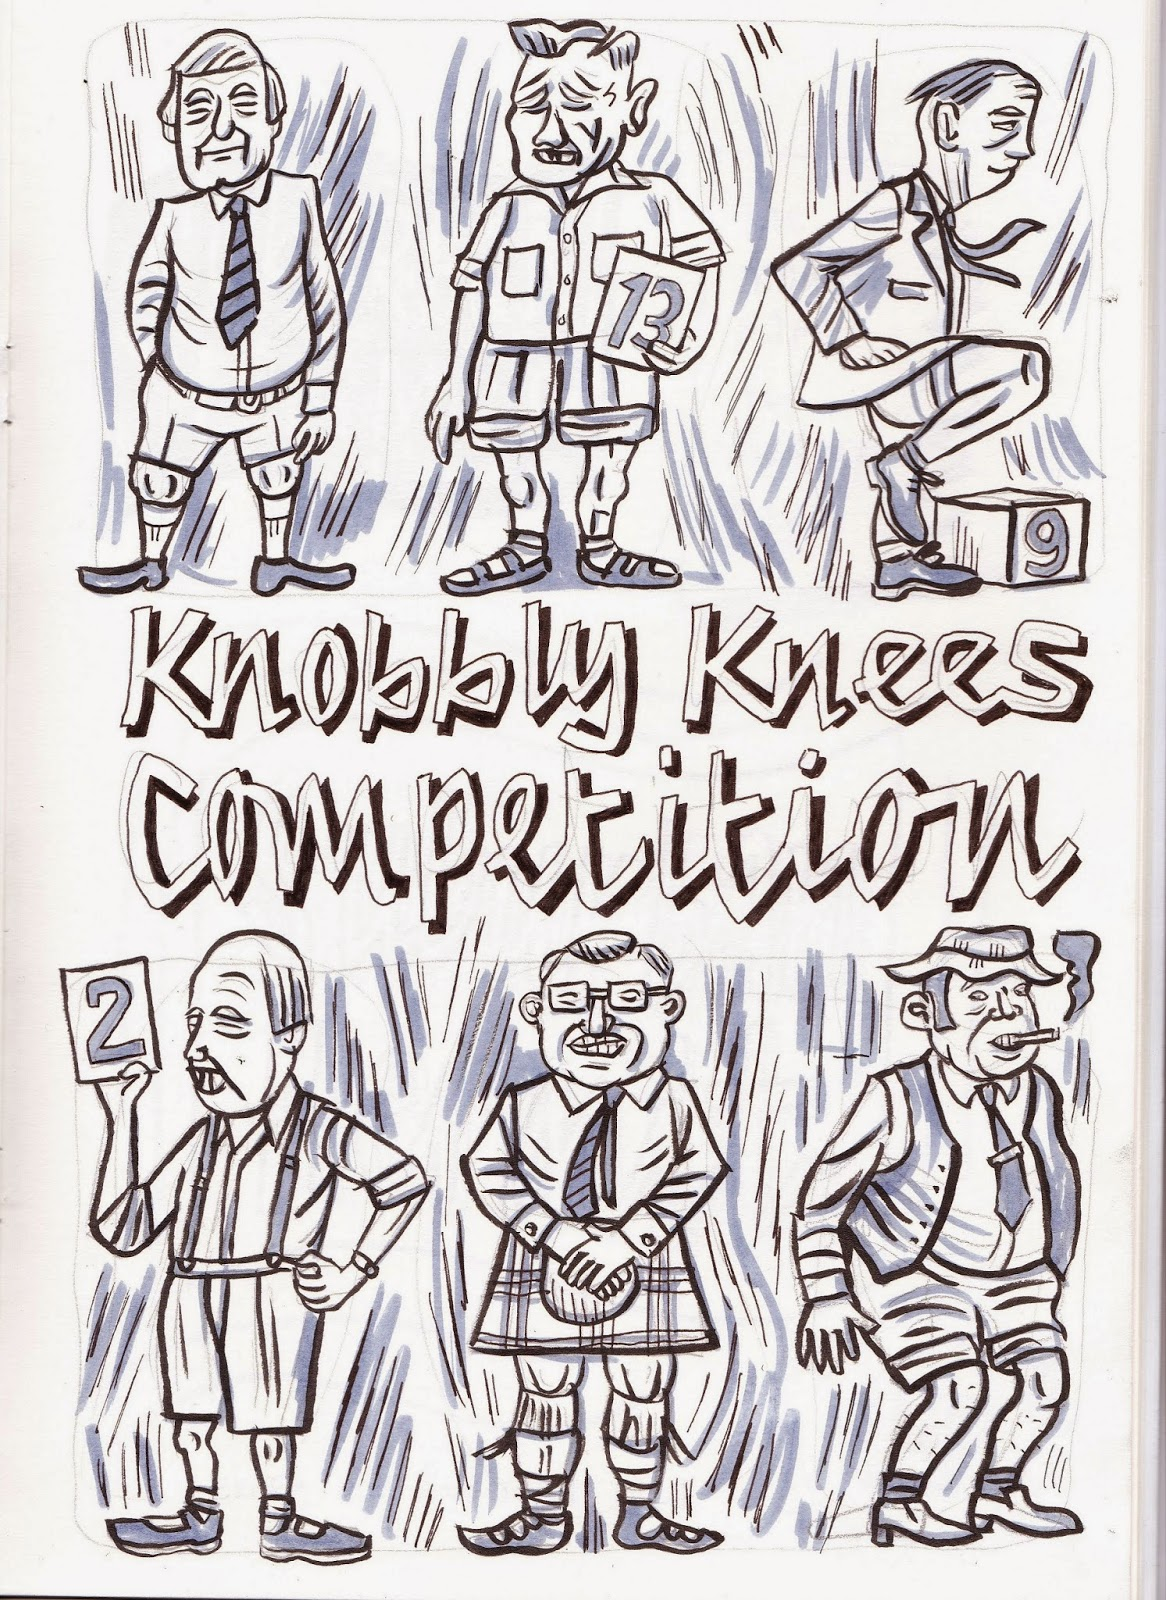 Knobbly Knees Competition Knobbly Knees Competition